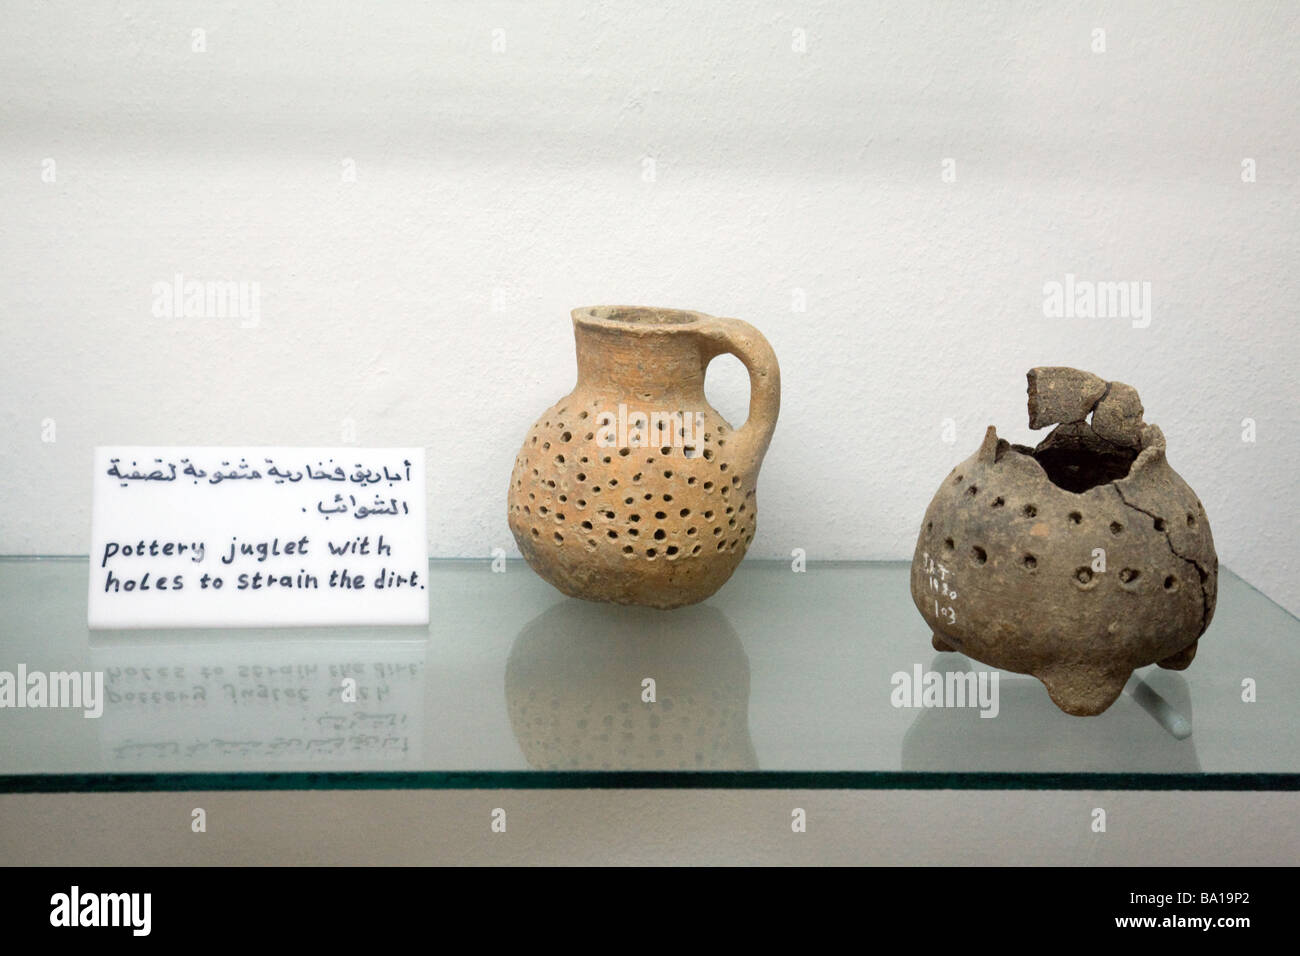 Iron age pottery vases, in the Museum of Archaeology, Jerash, Jordan - Stock Image